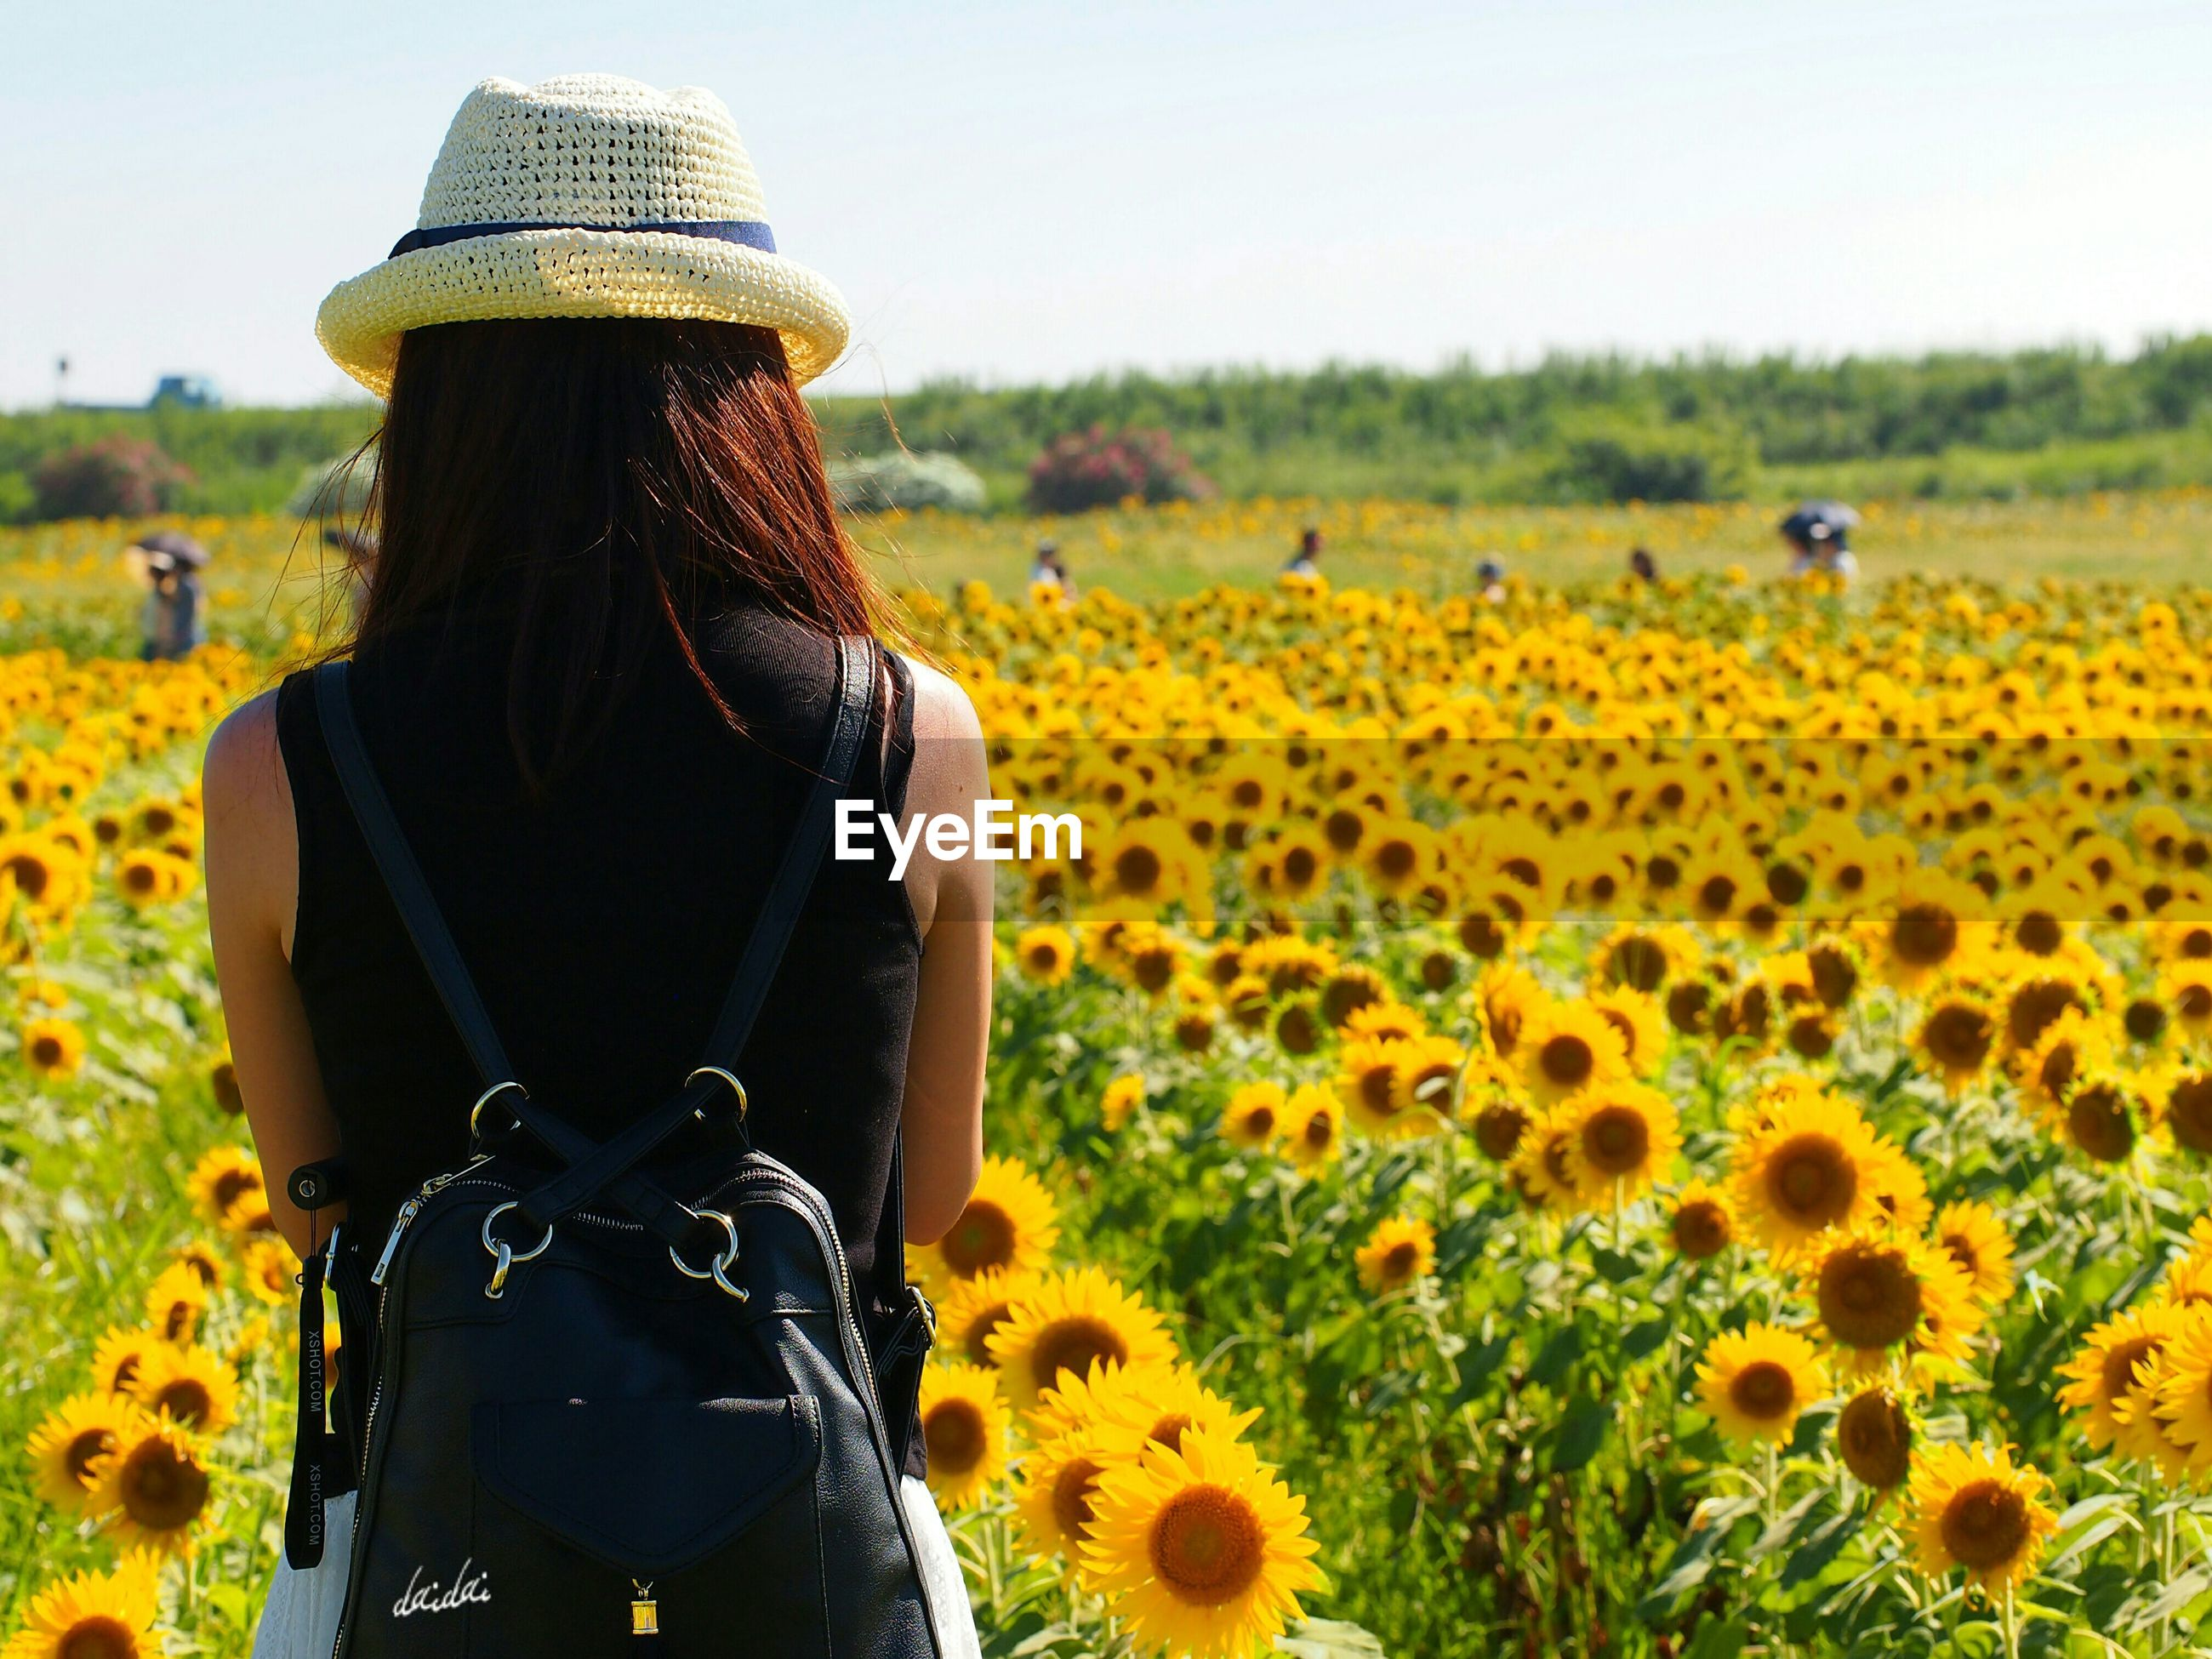 flower, field, yellow, lifestyles, agriculture, leisure activity, rural scene, beauty in nature, farm, landscape, focus on foreground, rear view, nature, plant, crop, clear sky, casual clothing, growth